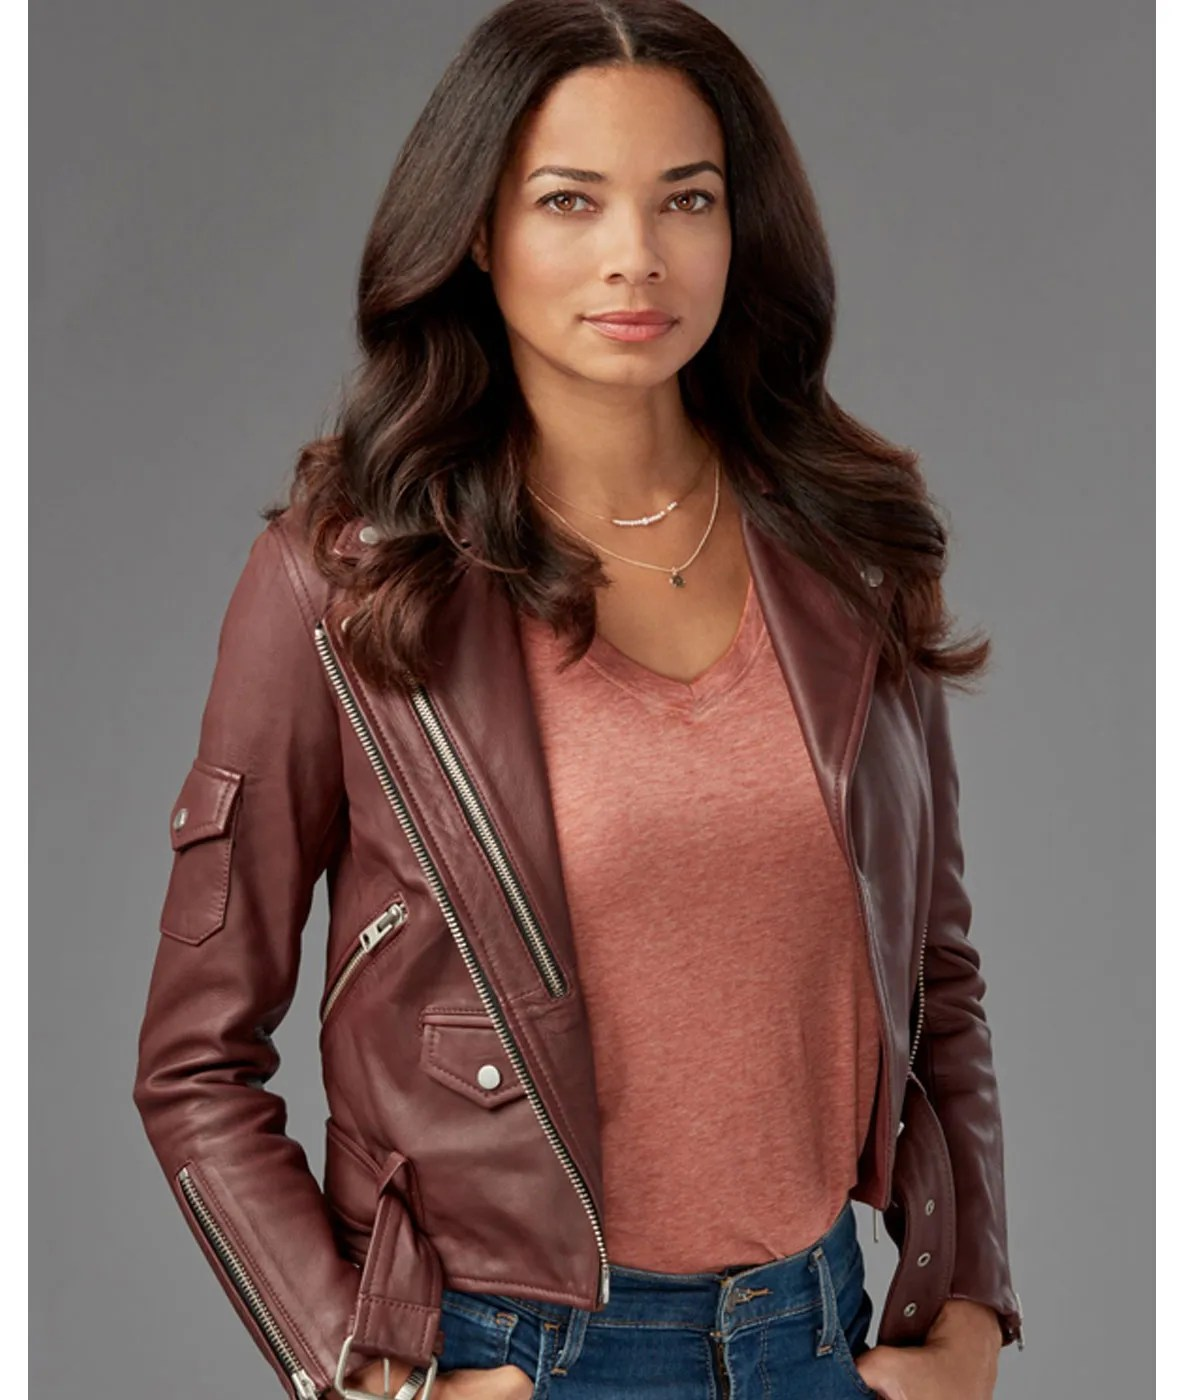 rochelle-aytes-redemption-in-cherry-springs-leather-jacket